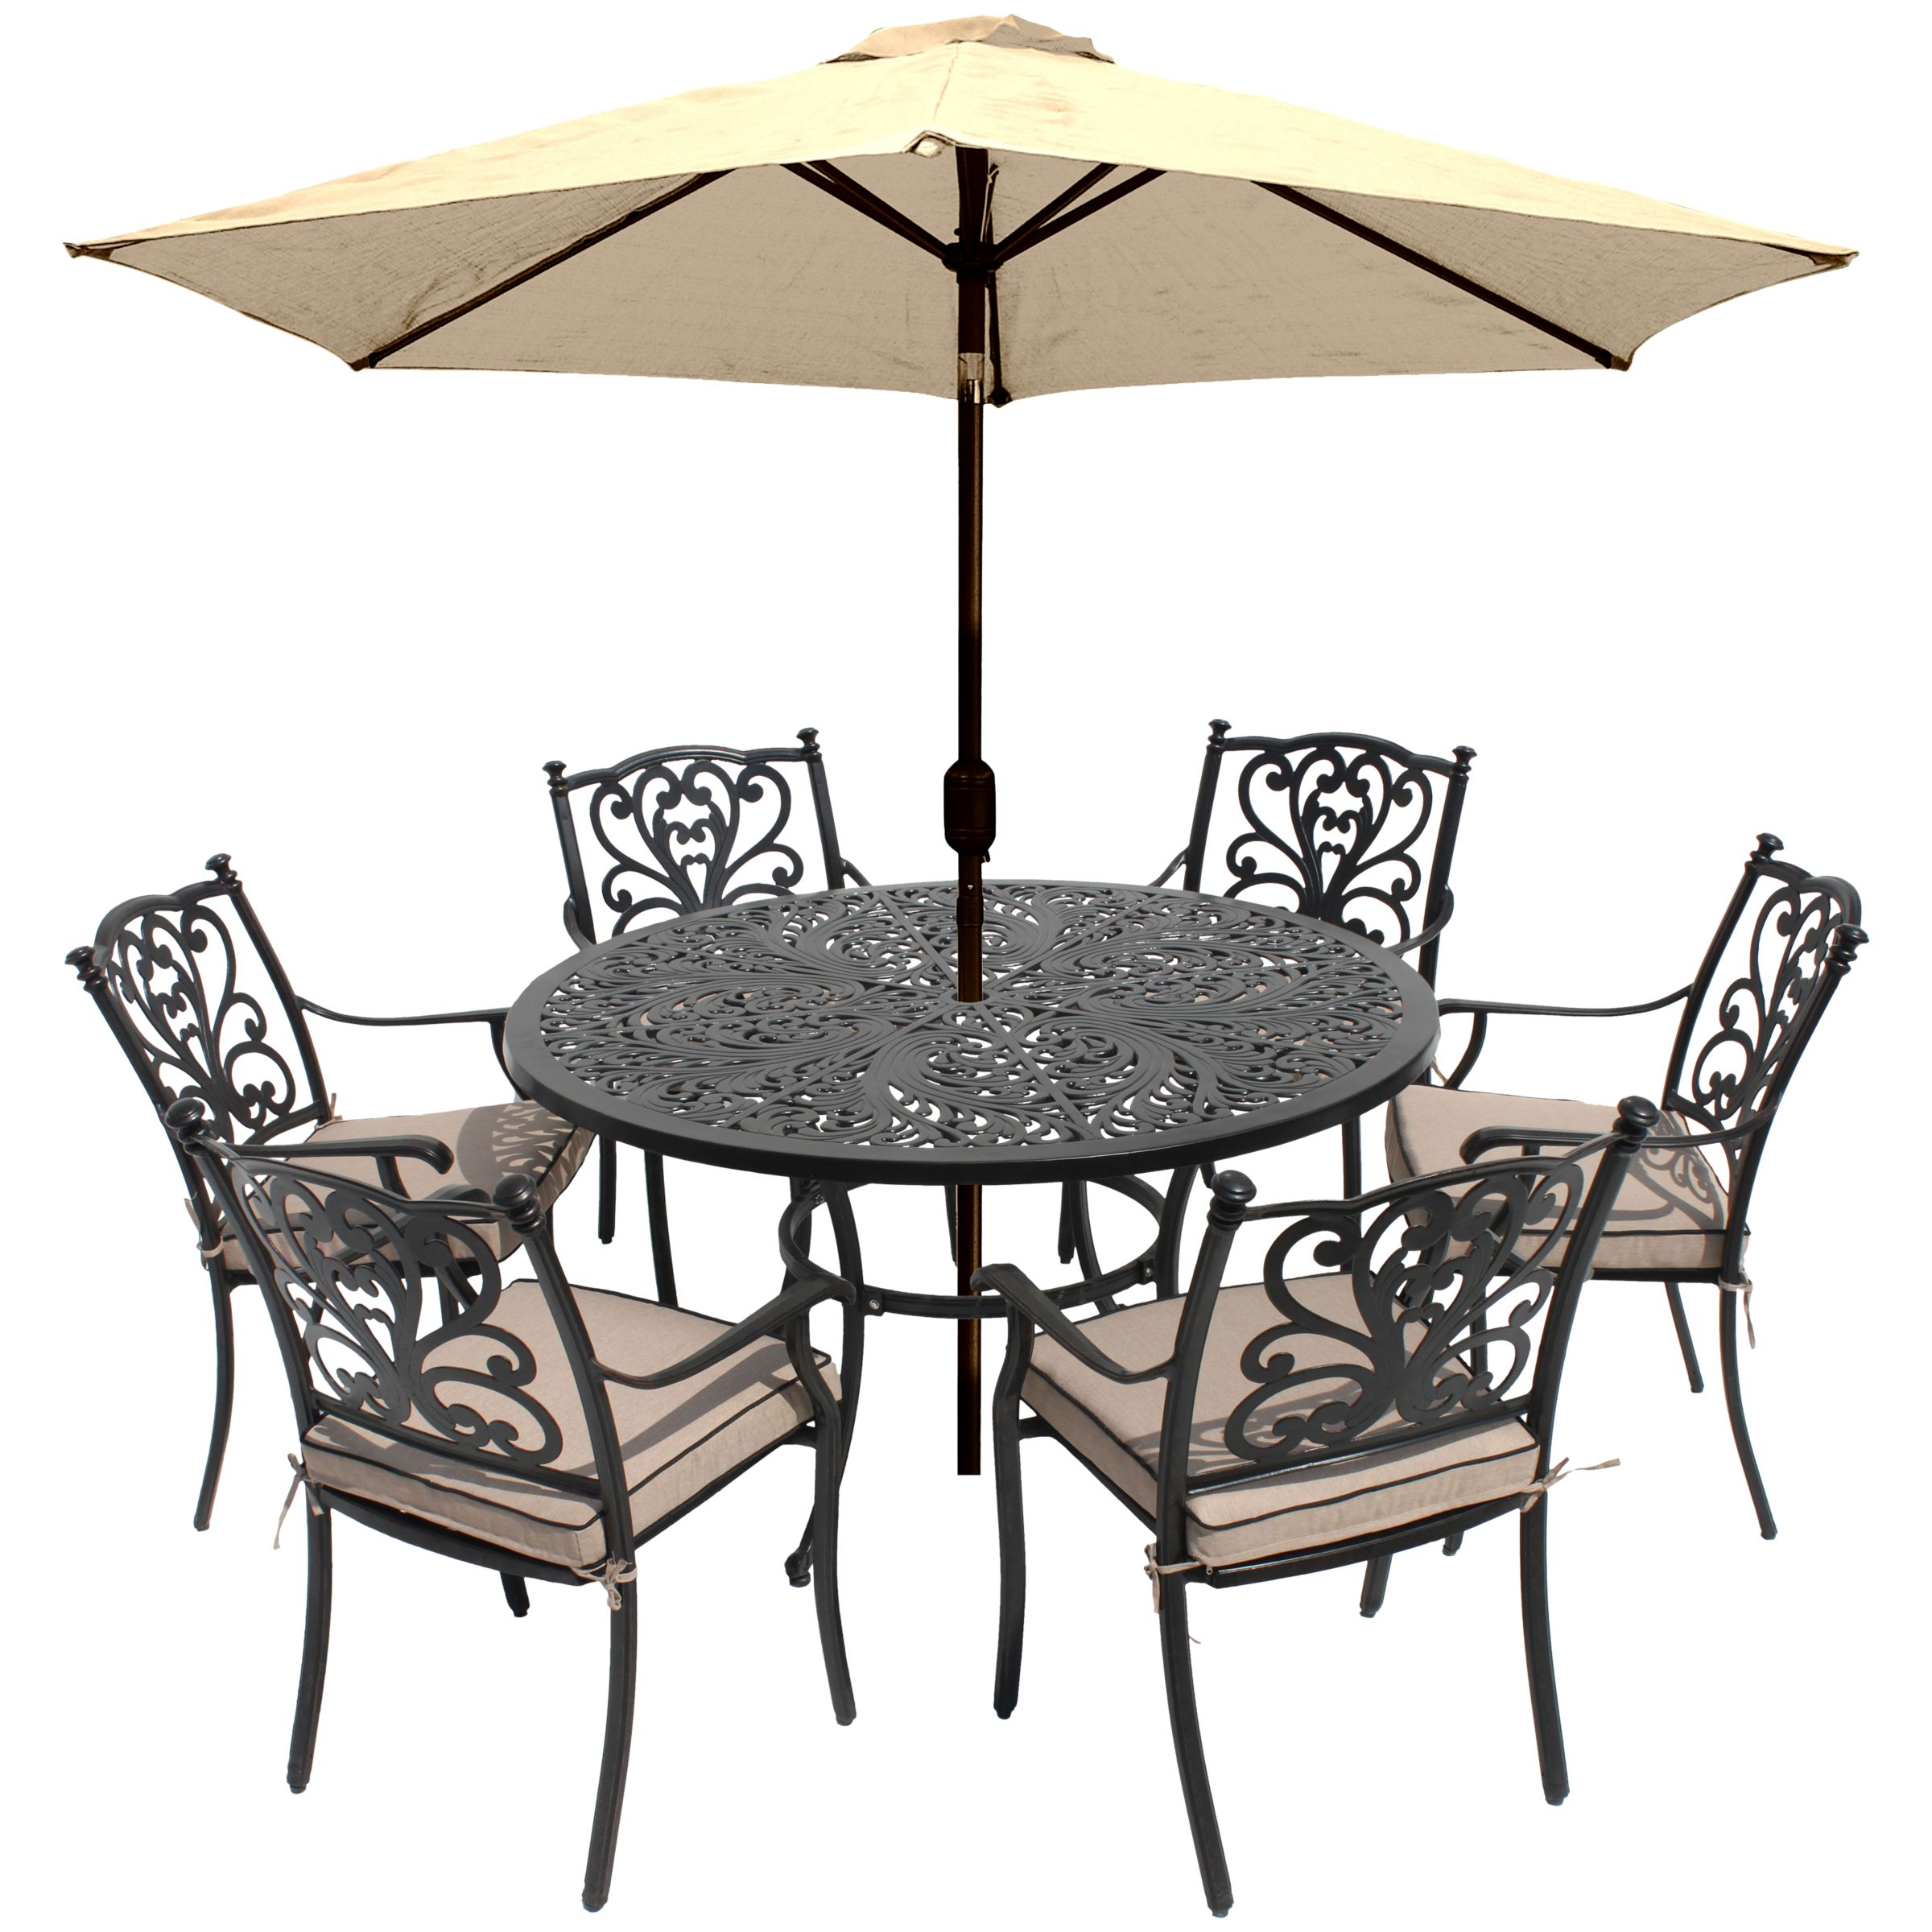 LG Outdoor LG Outdoor Devon 6 Seater Garden Dining Table and Chairs Set with Parasol, Bronze